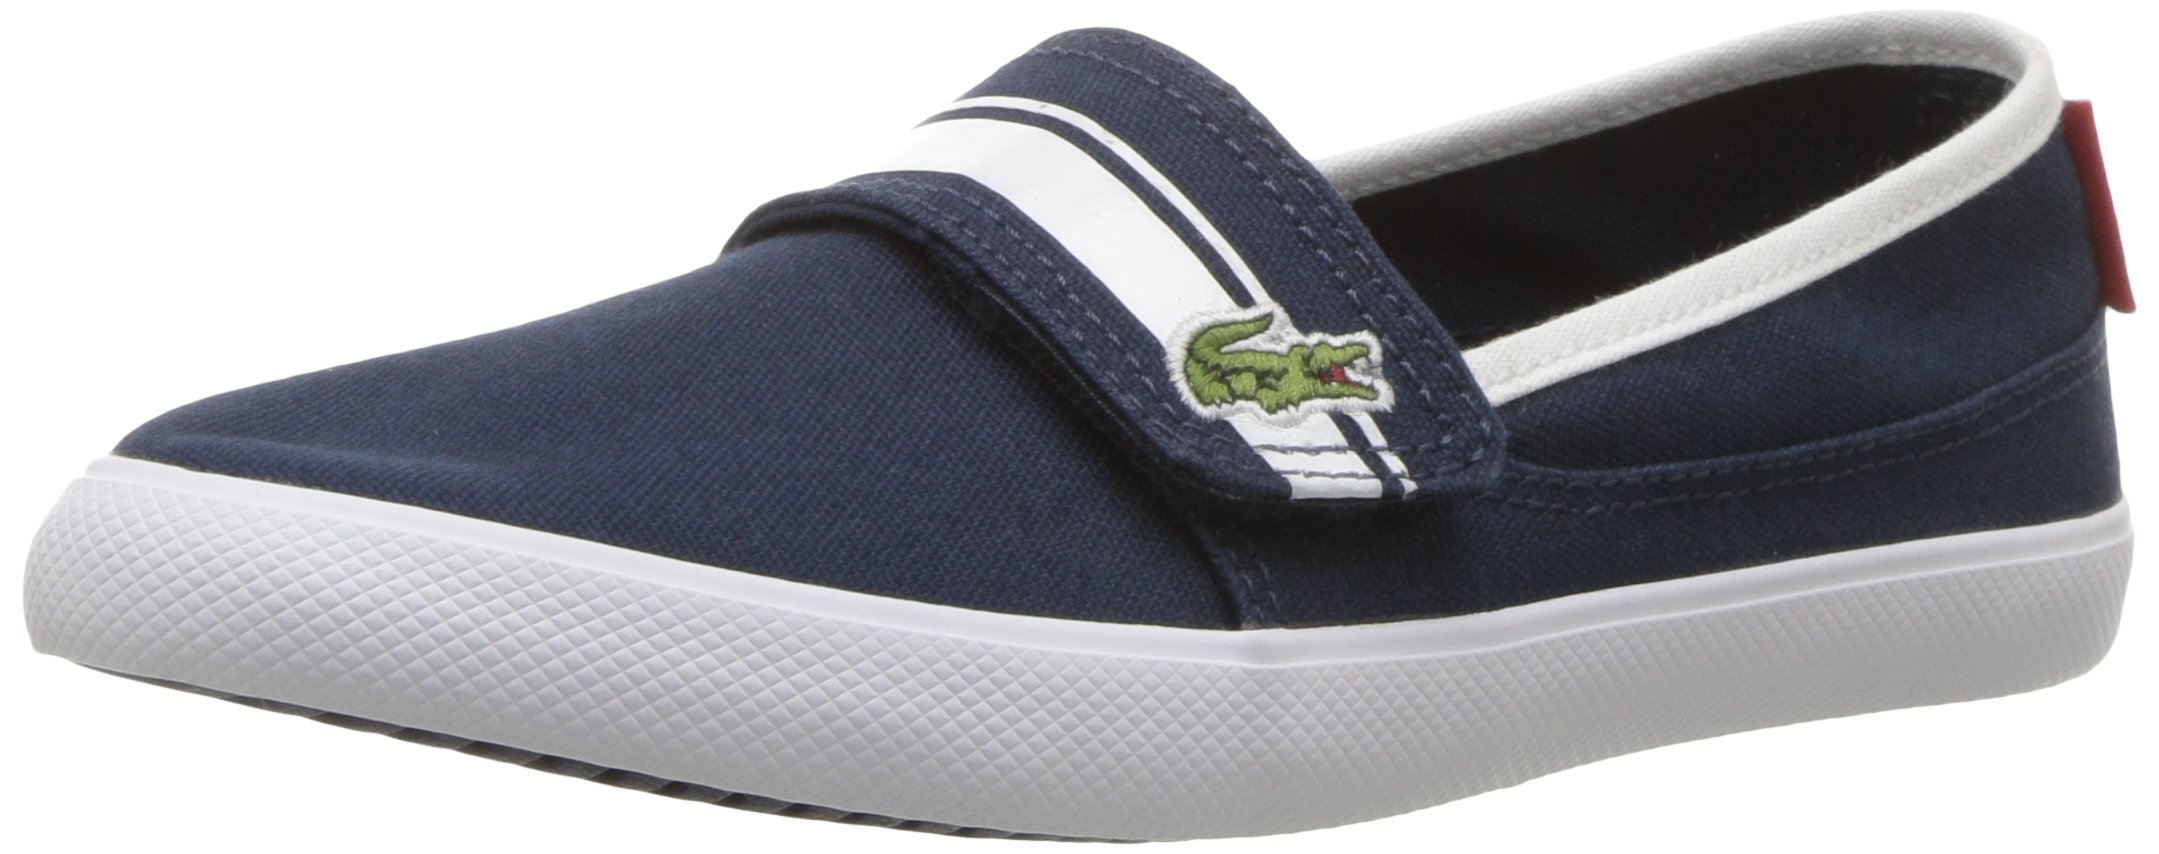 Lacoste Kids' Marice Slip-ONS,Navy/White Cotton Canvas,13. M US Little Kid by Lacoste (Image #1)